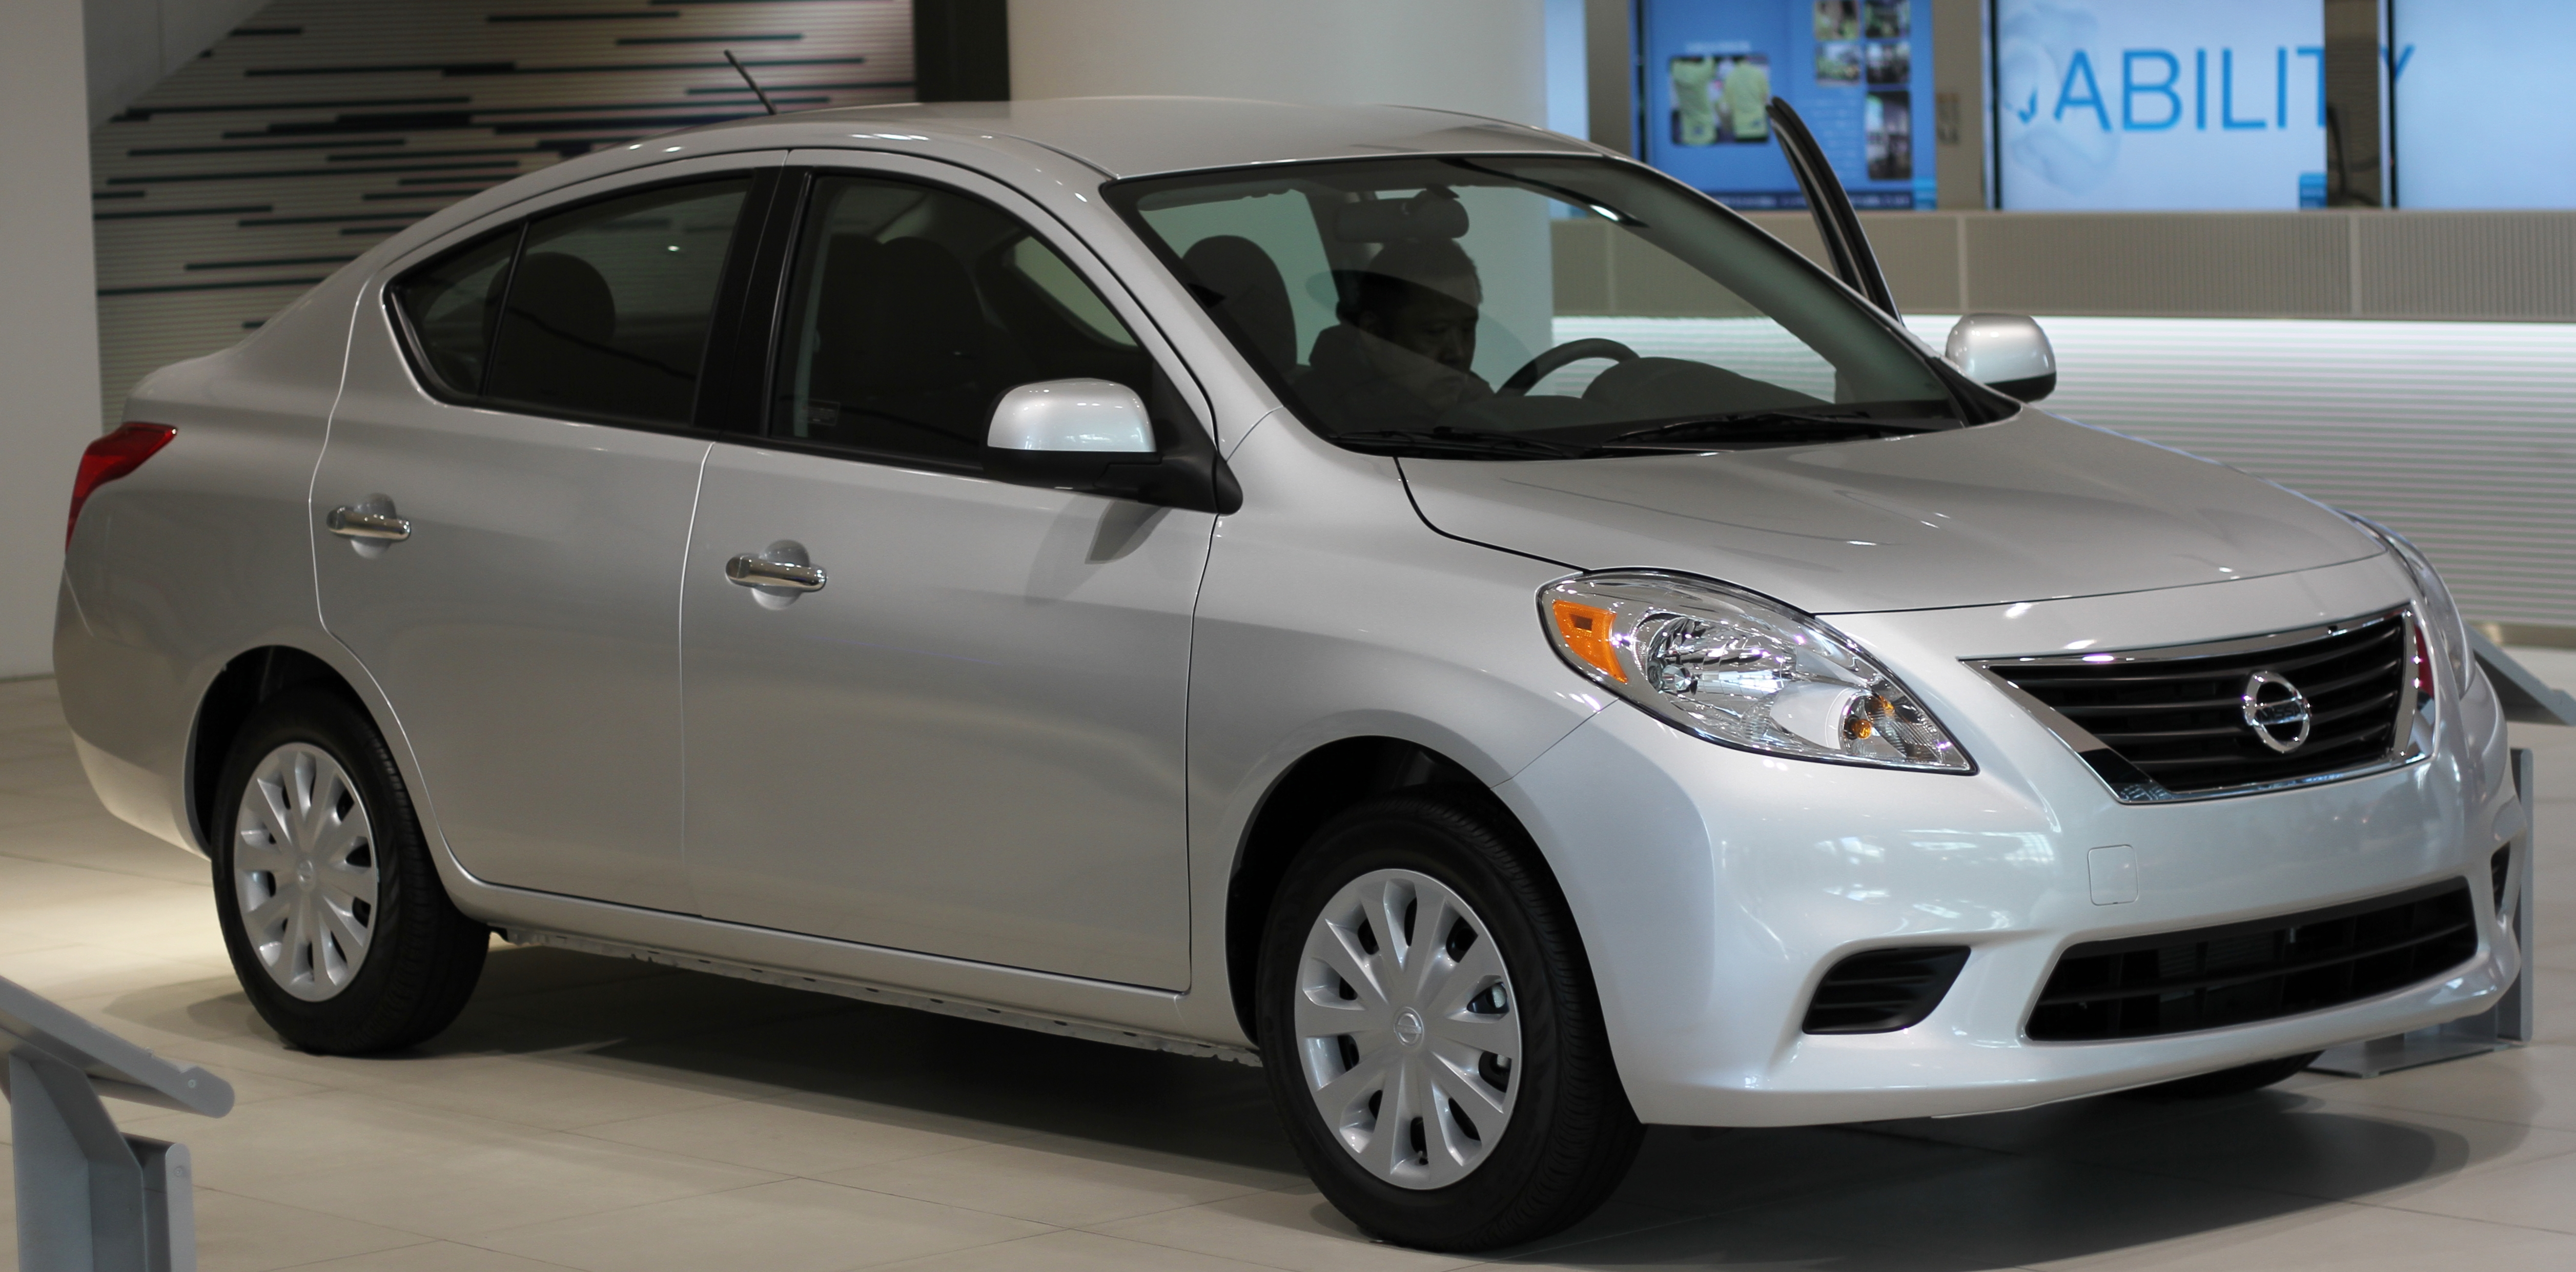 File Nissan Versa Sedan N17 1 6sv Jpg Wikimedia Commons